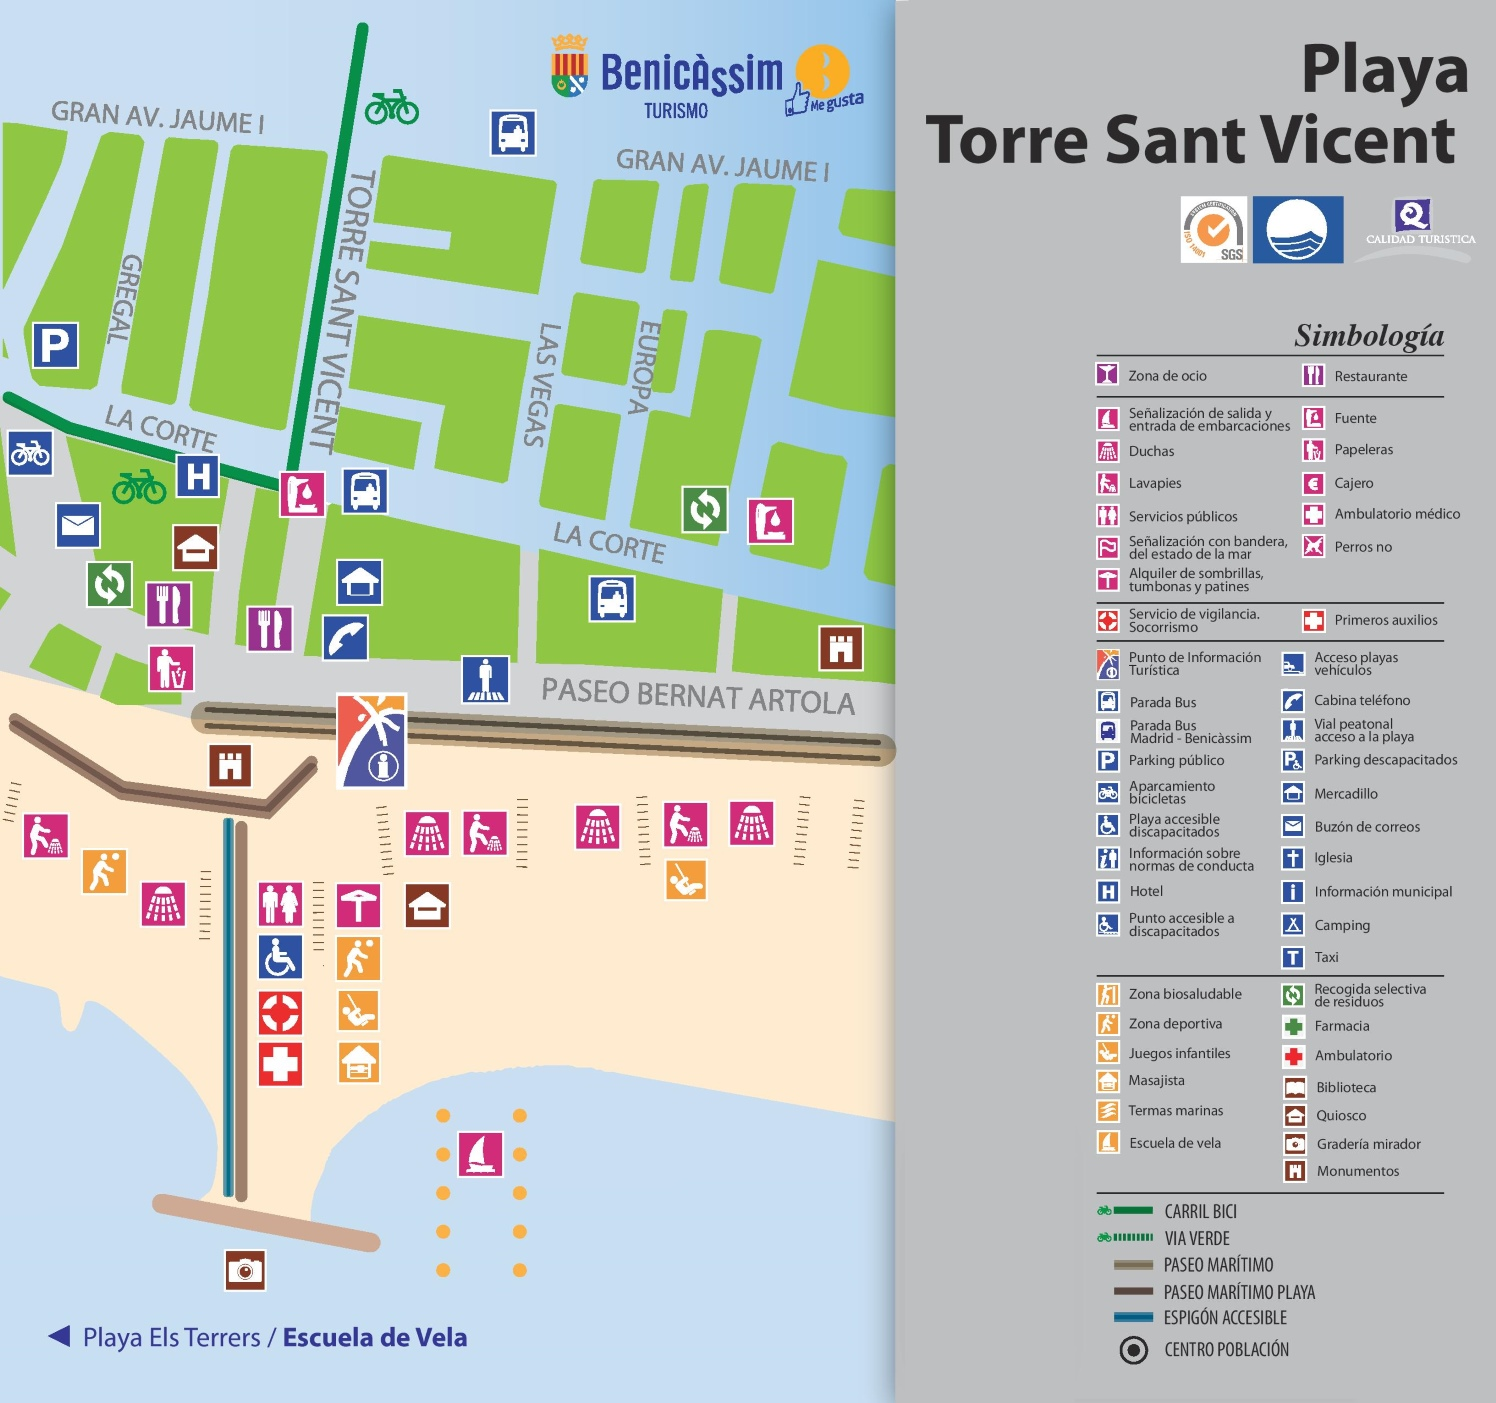 Playa Torre Sant Vicent map